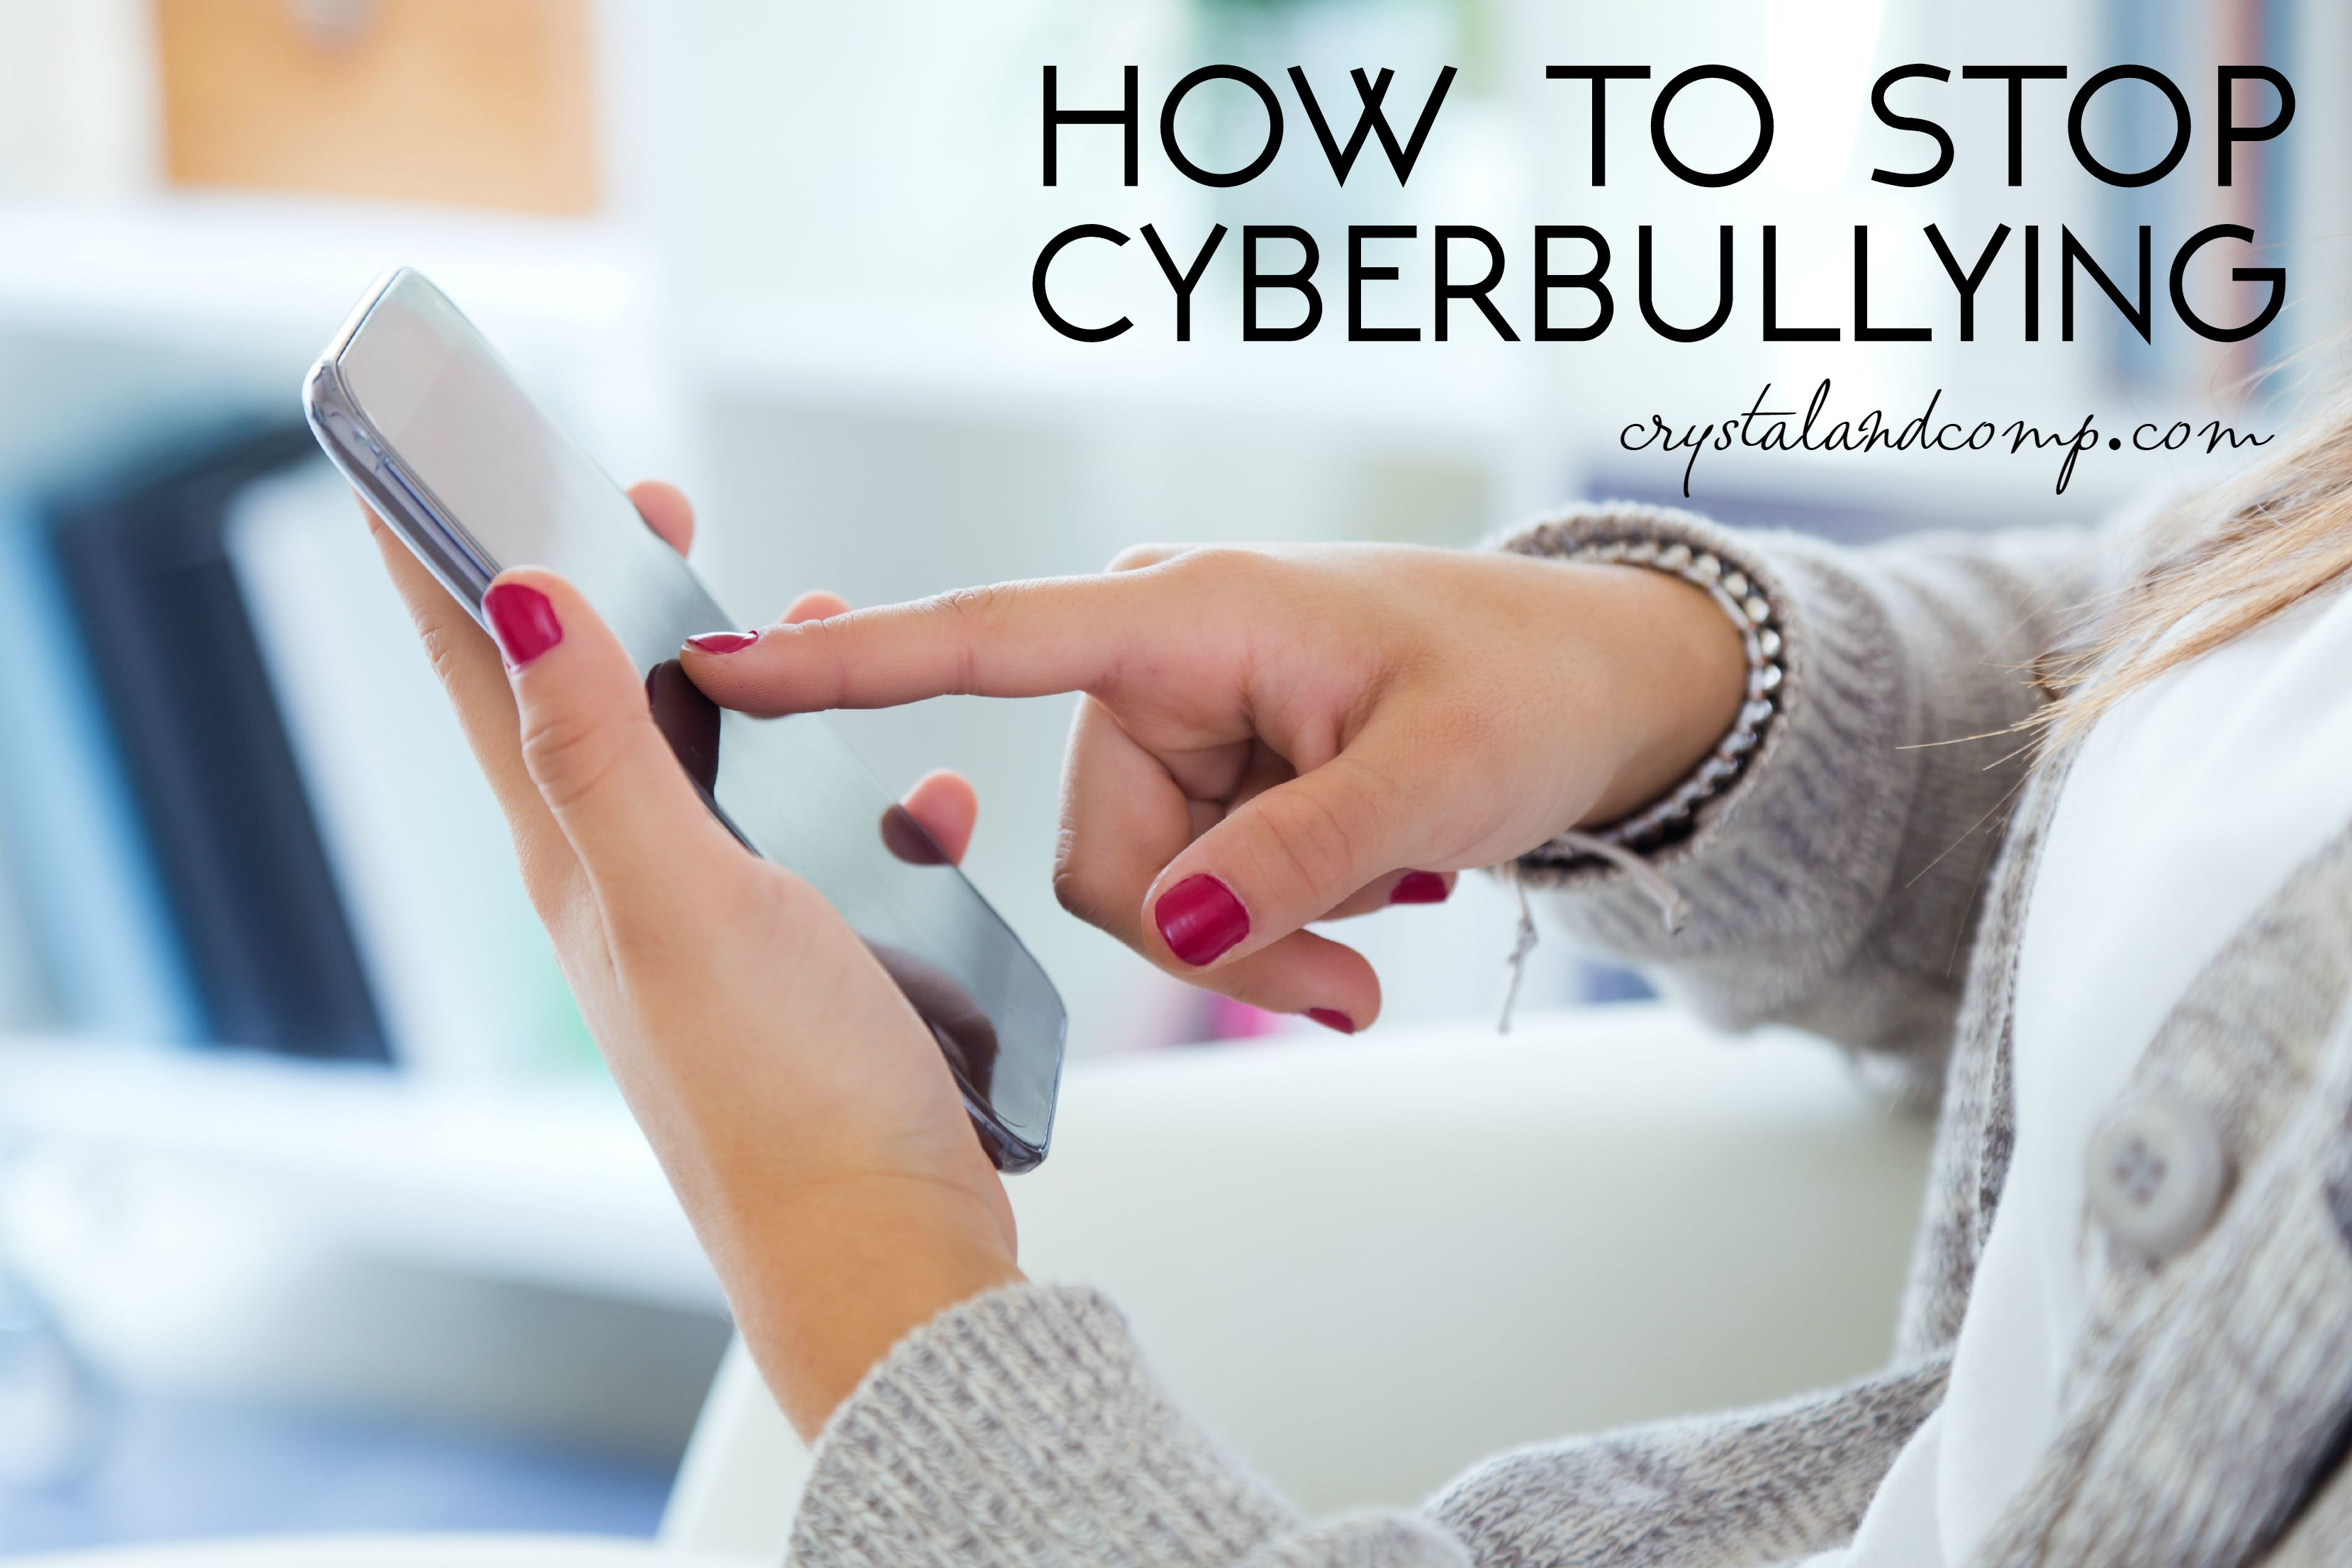 how to end cyber bullying Cyberbullying affects countless teens and adolescents a 2015 random sample study of 11-15 year olds in the midwest found that over 34% reported being the victim of cyberbullying in their lifetime other studies have found that 1 in 4 teens have been cyberbulliedvictims of cyberbullying are much more likely to use alcohol and drugs, avoid school and have poor grades, experience depression and.